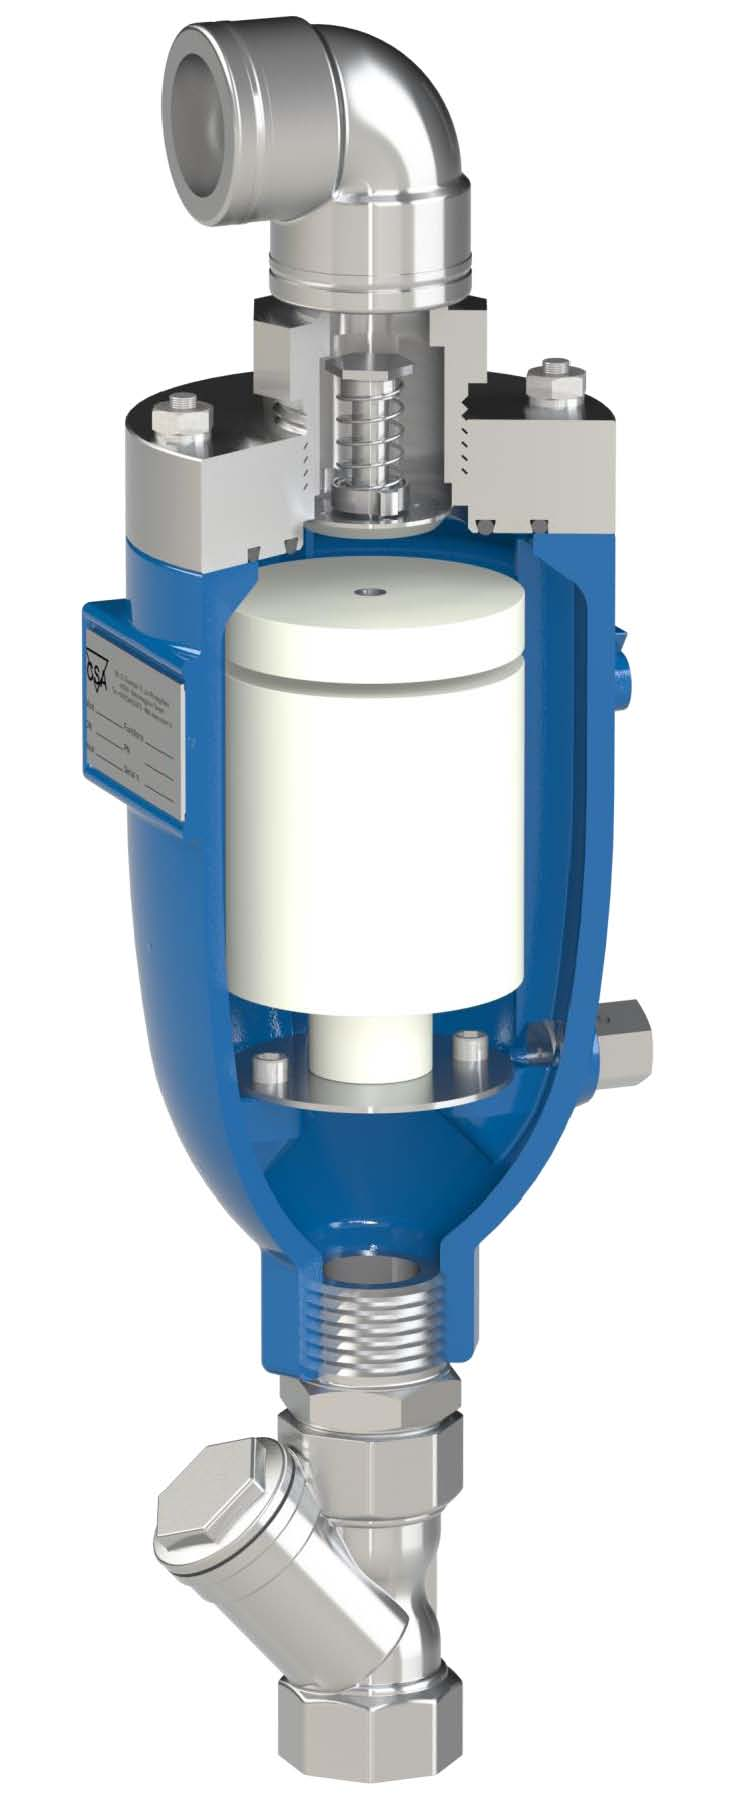 Fox-AS-HR air valve for fire & building services